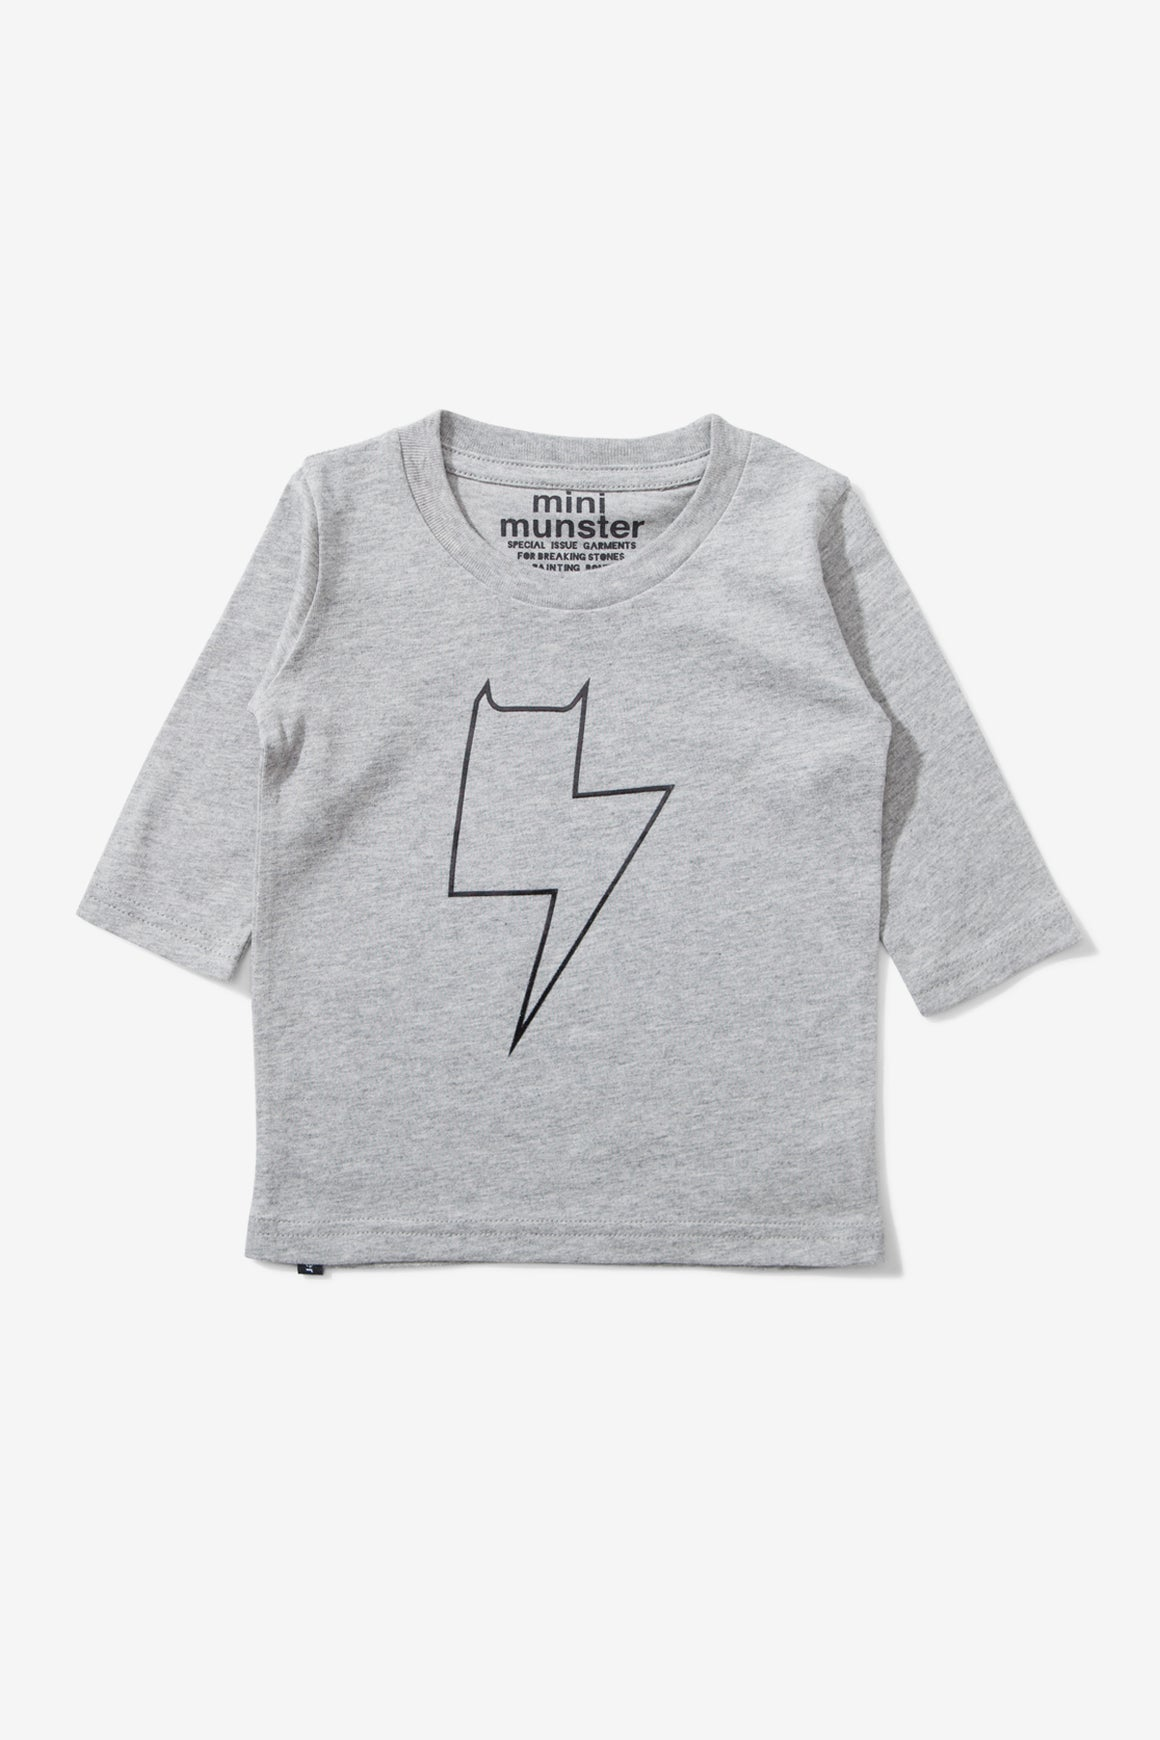 Munster Kids Plugged In Tee - Grey